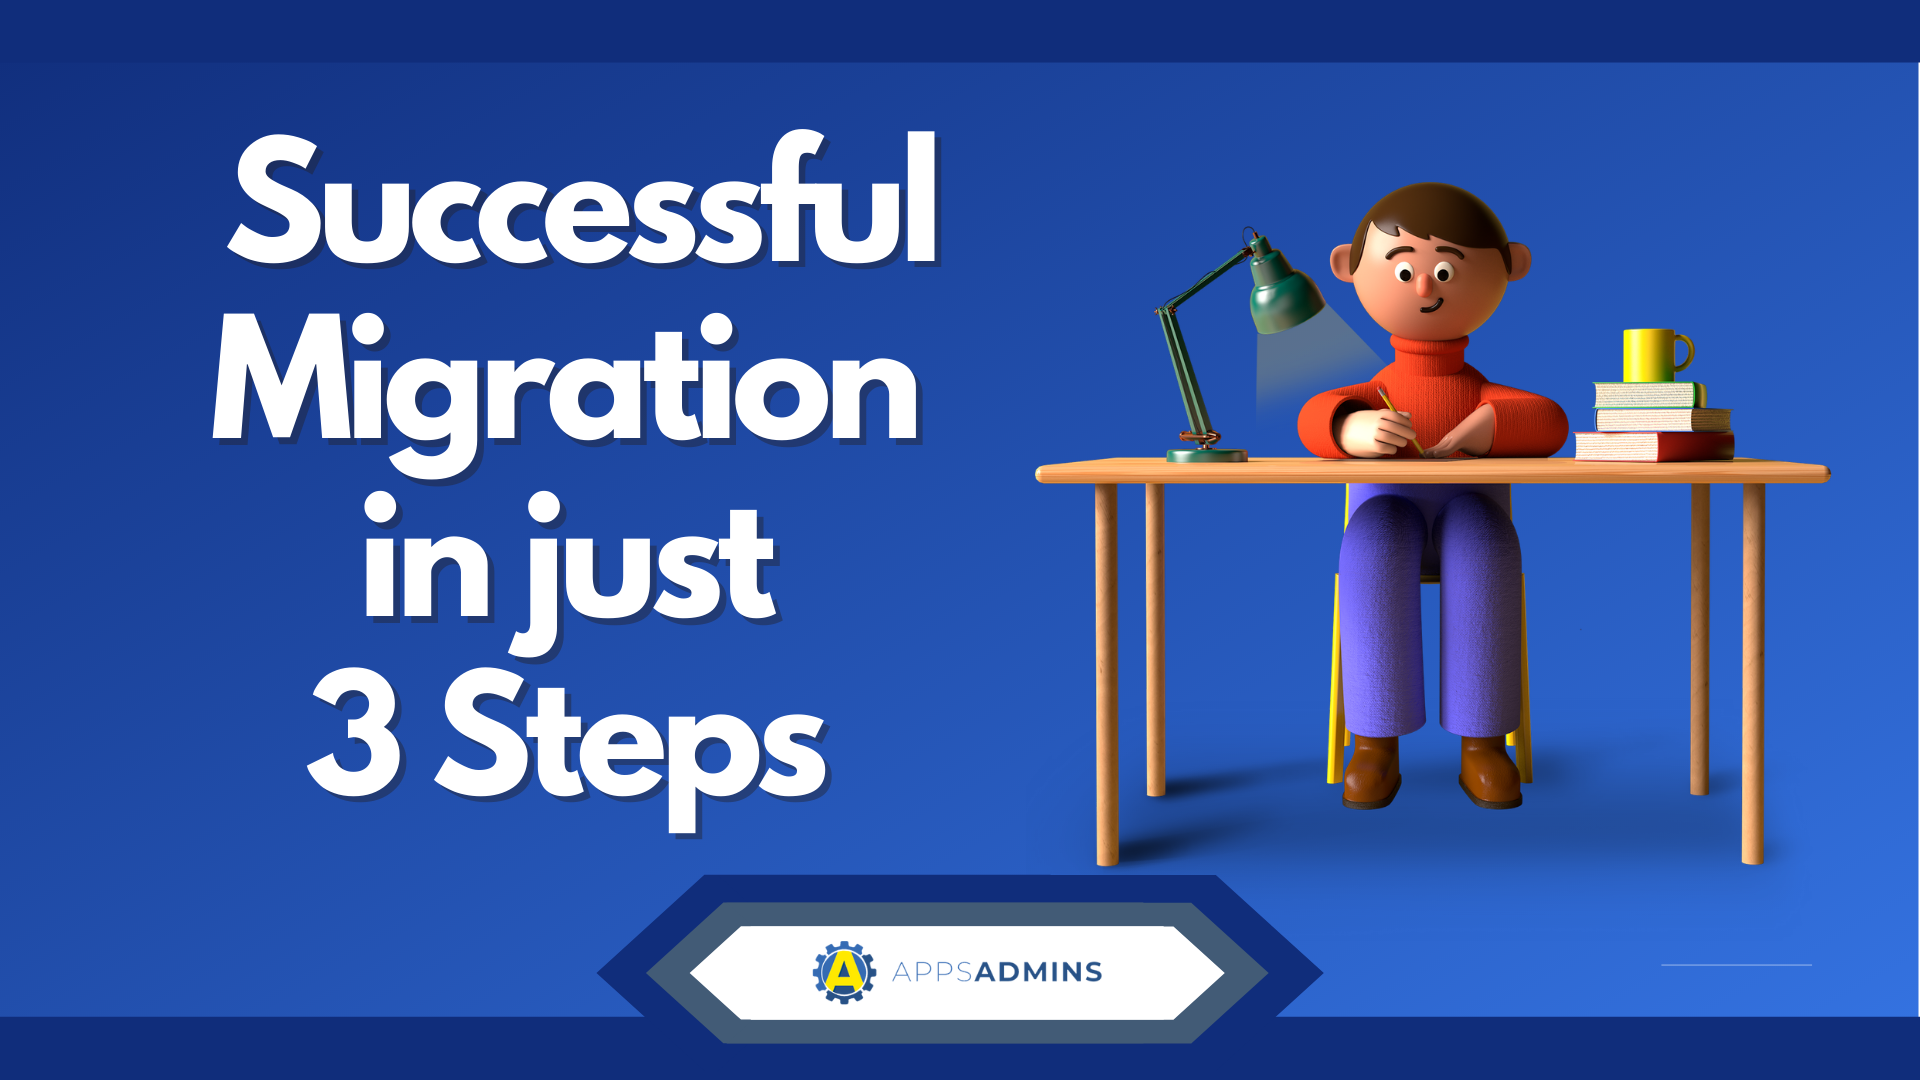 Successful Migration in 3 Steps